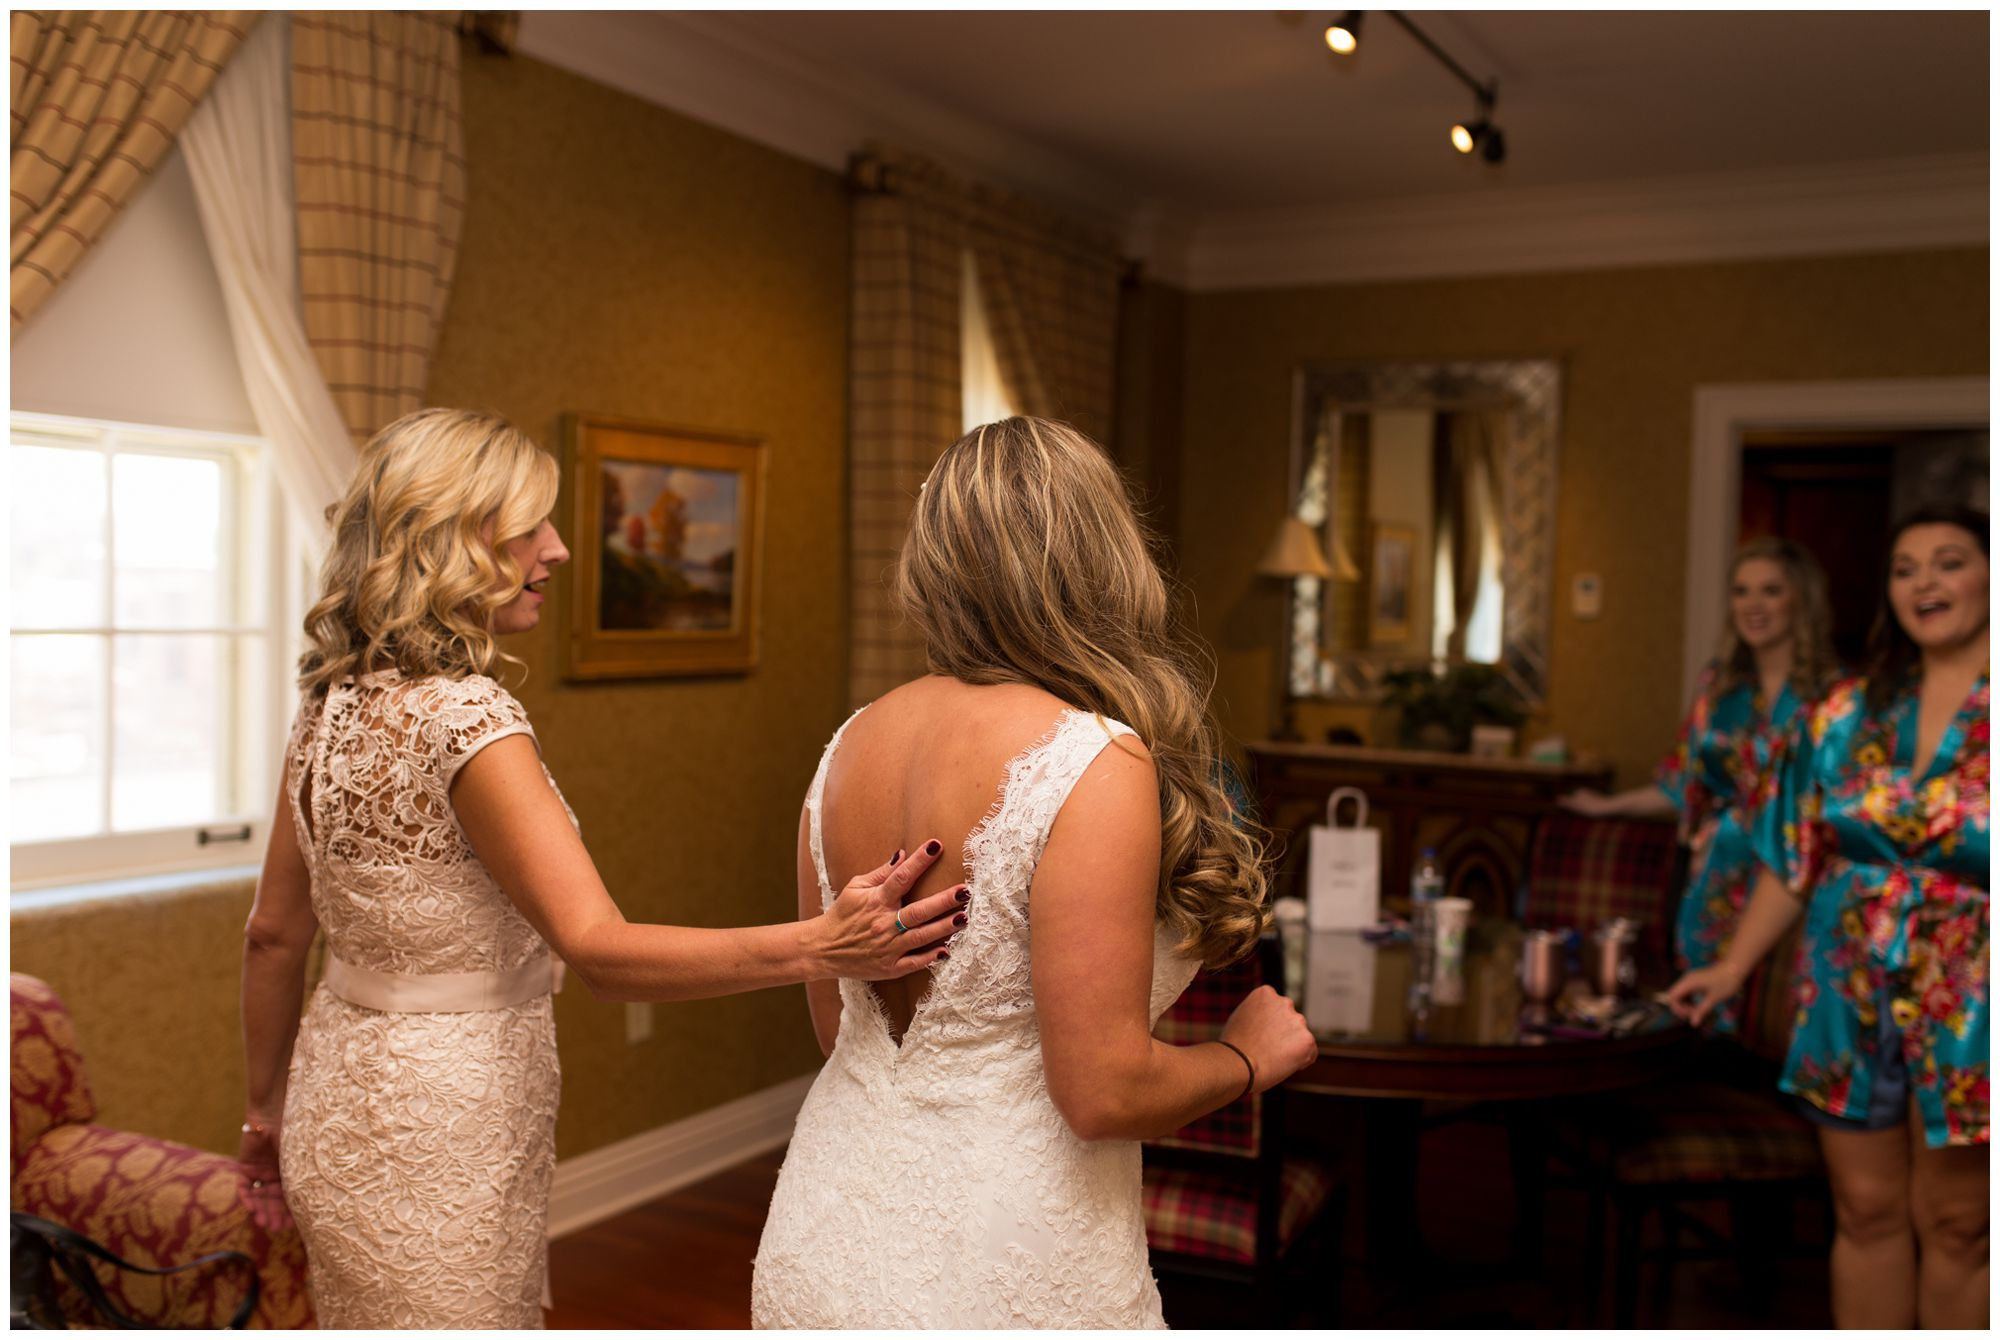 bride's mom puts hand on small of bride's back as bridesmaids look on at Charley Creek Inn in Wabash Indiana